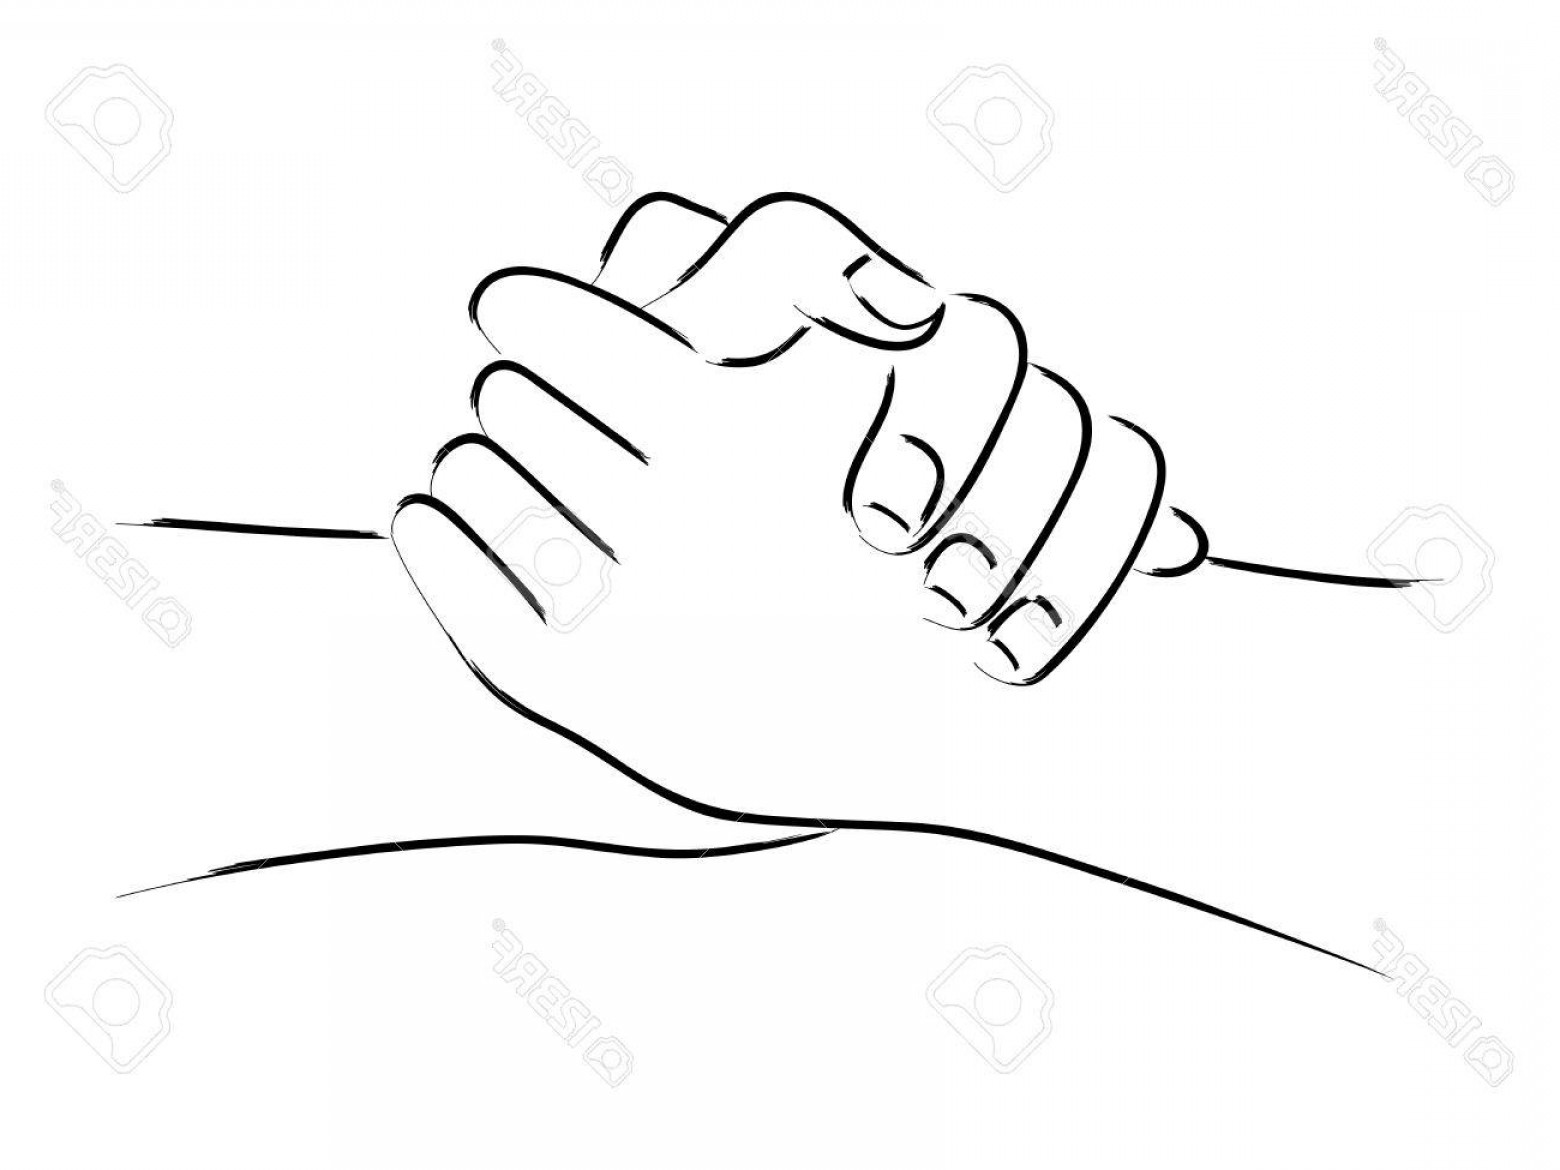 Hand Vector Clip Art: Photostock Vector Line Art Of Two Hands Holding Each Other Strongly